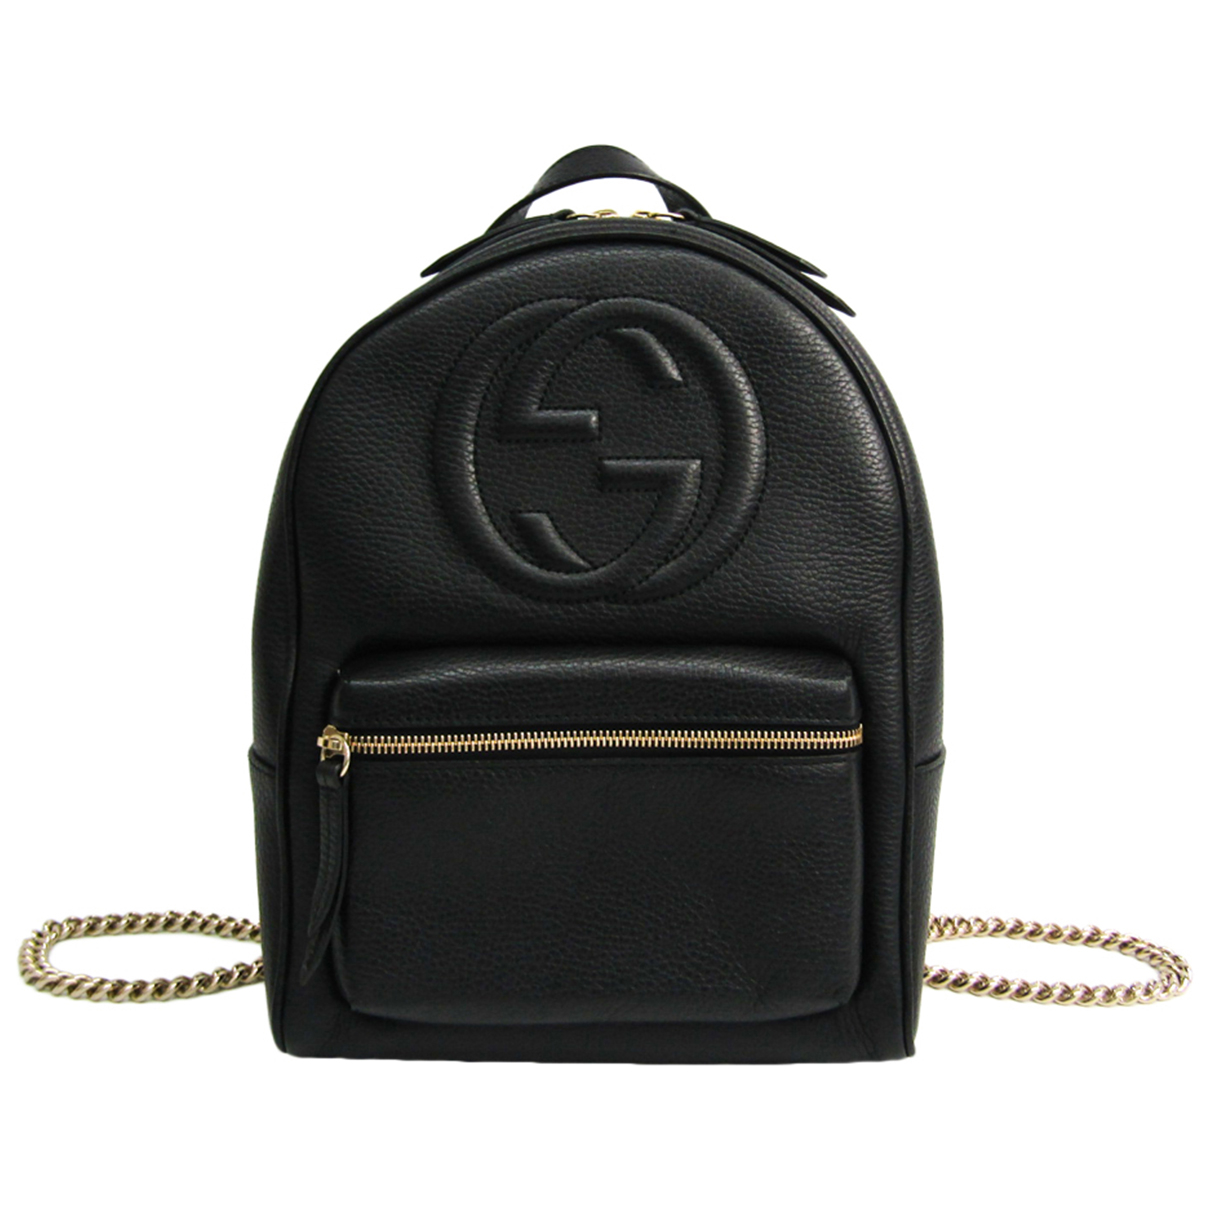 Gucci N Black Leather backpack for Women N